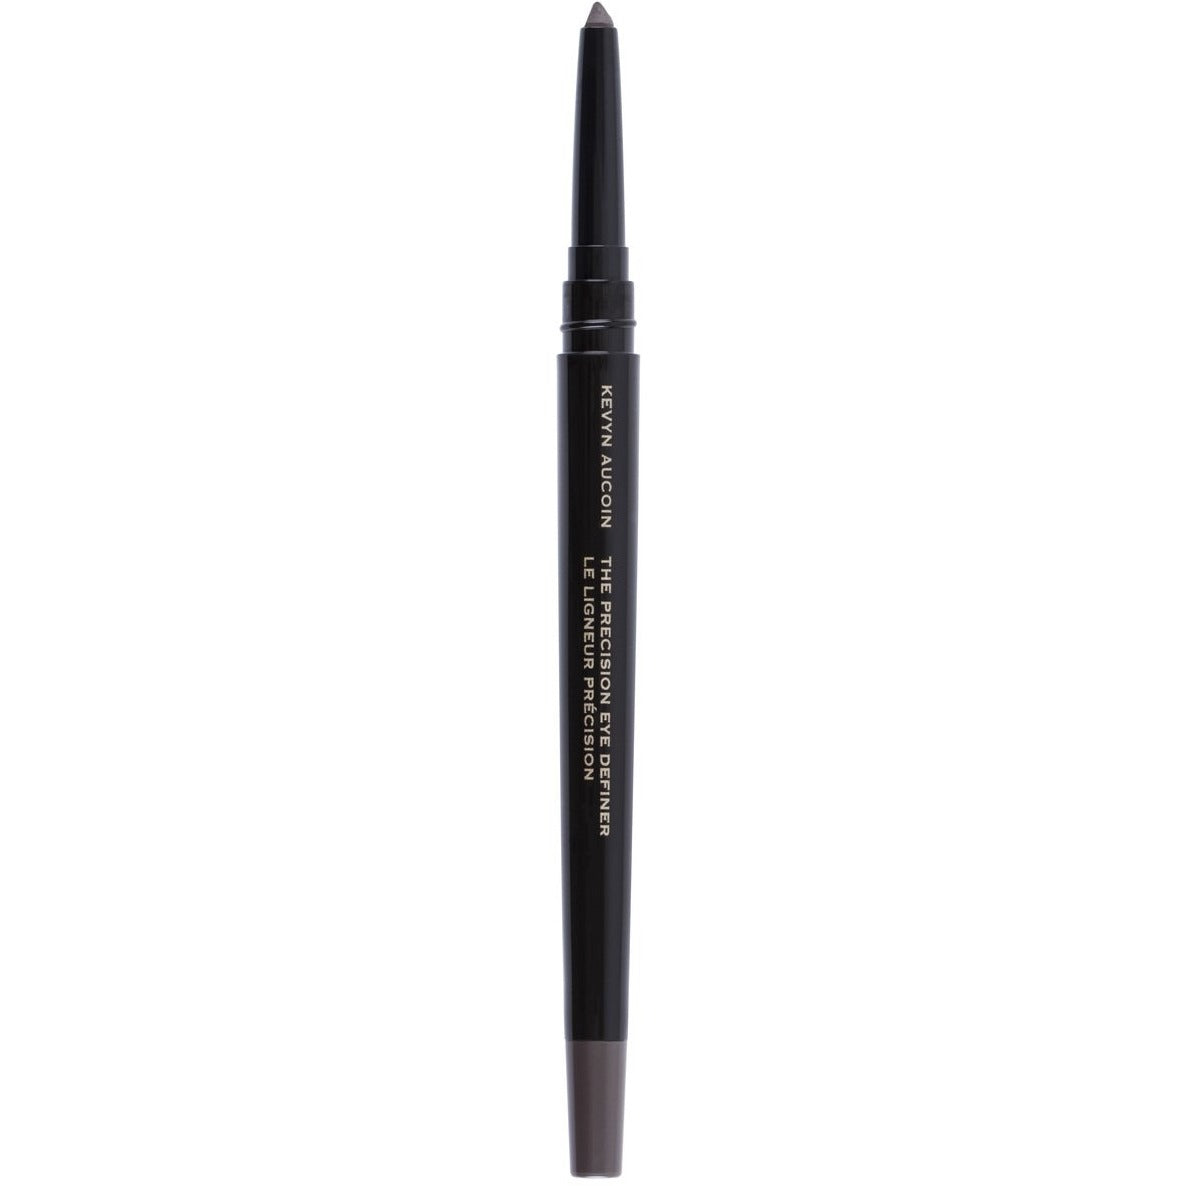 The Precision Eye Definer - Ironclad